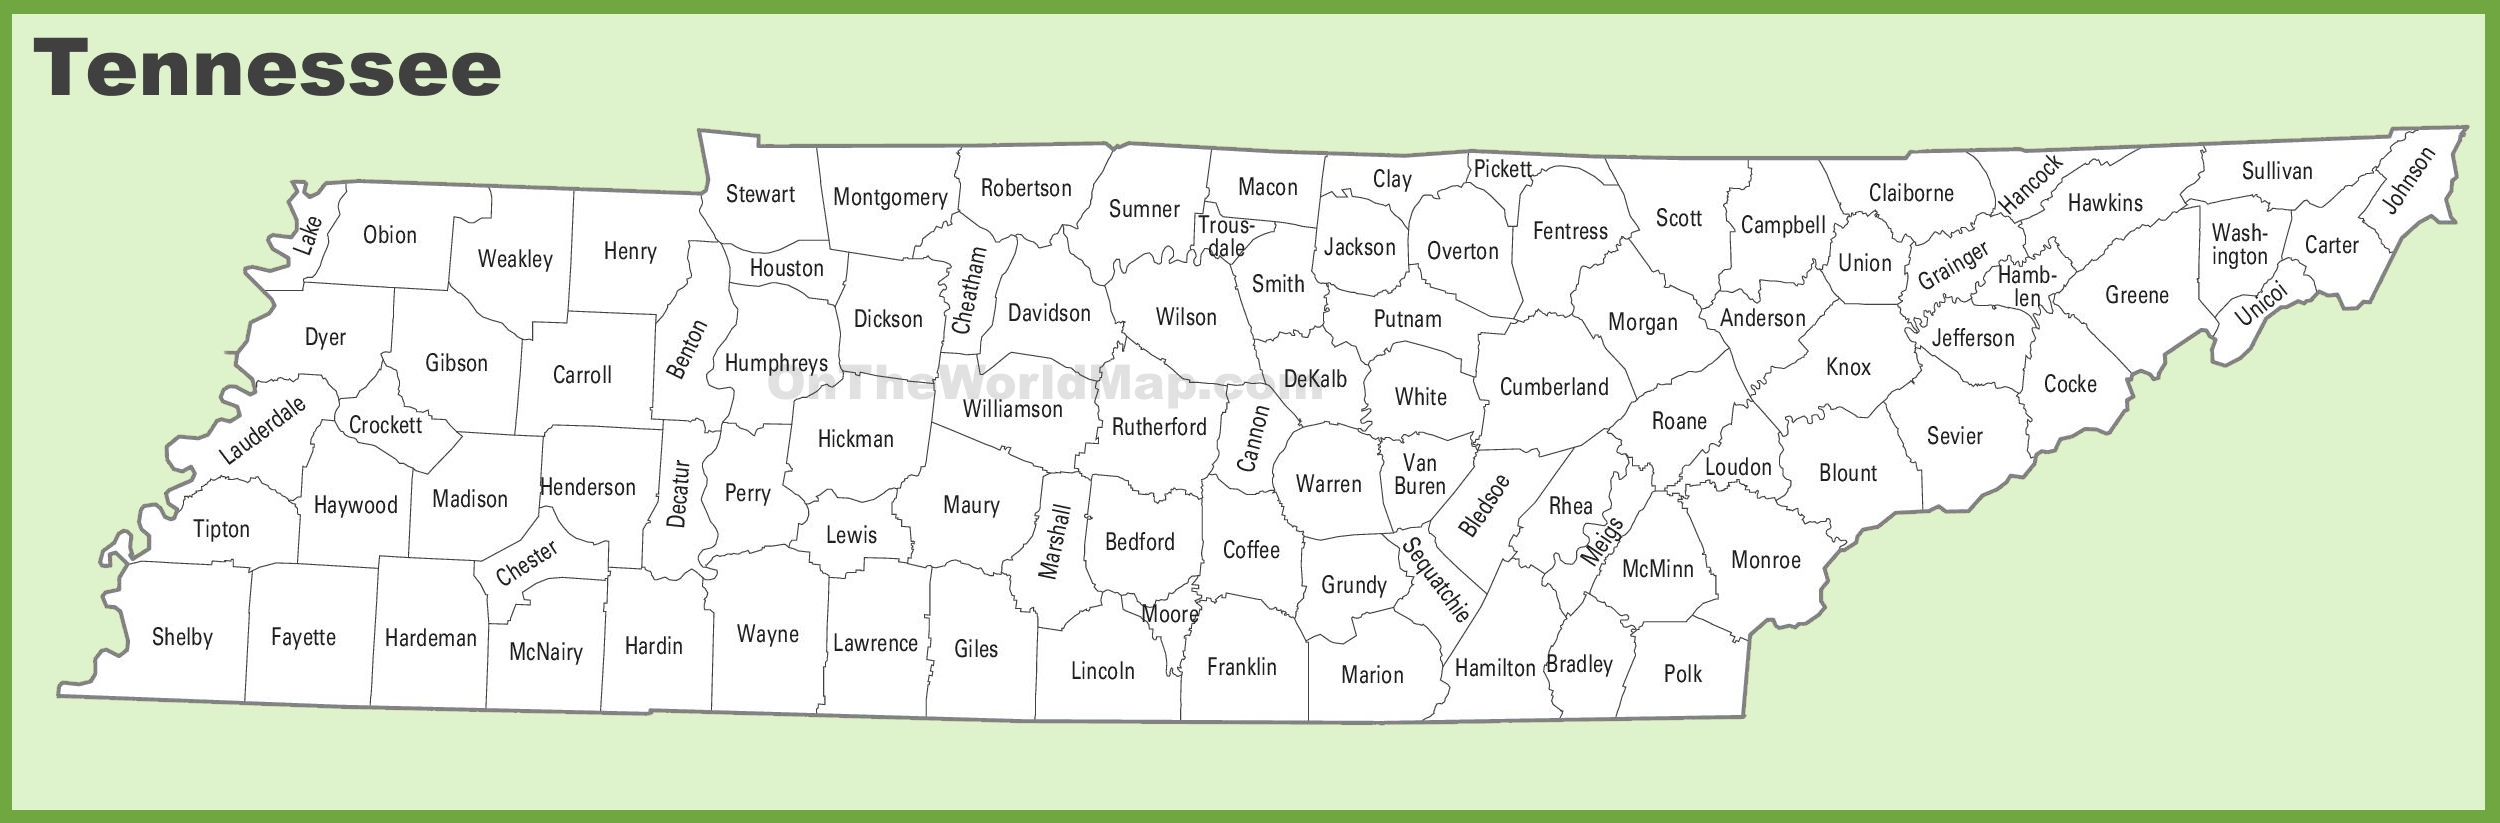 Tennessee Map Counties Tennessee county map Tennessee Map Counties